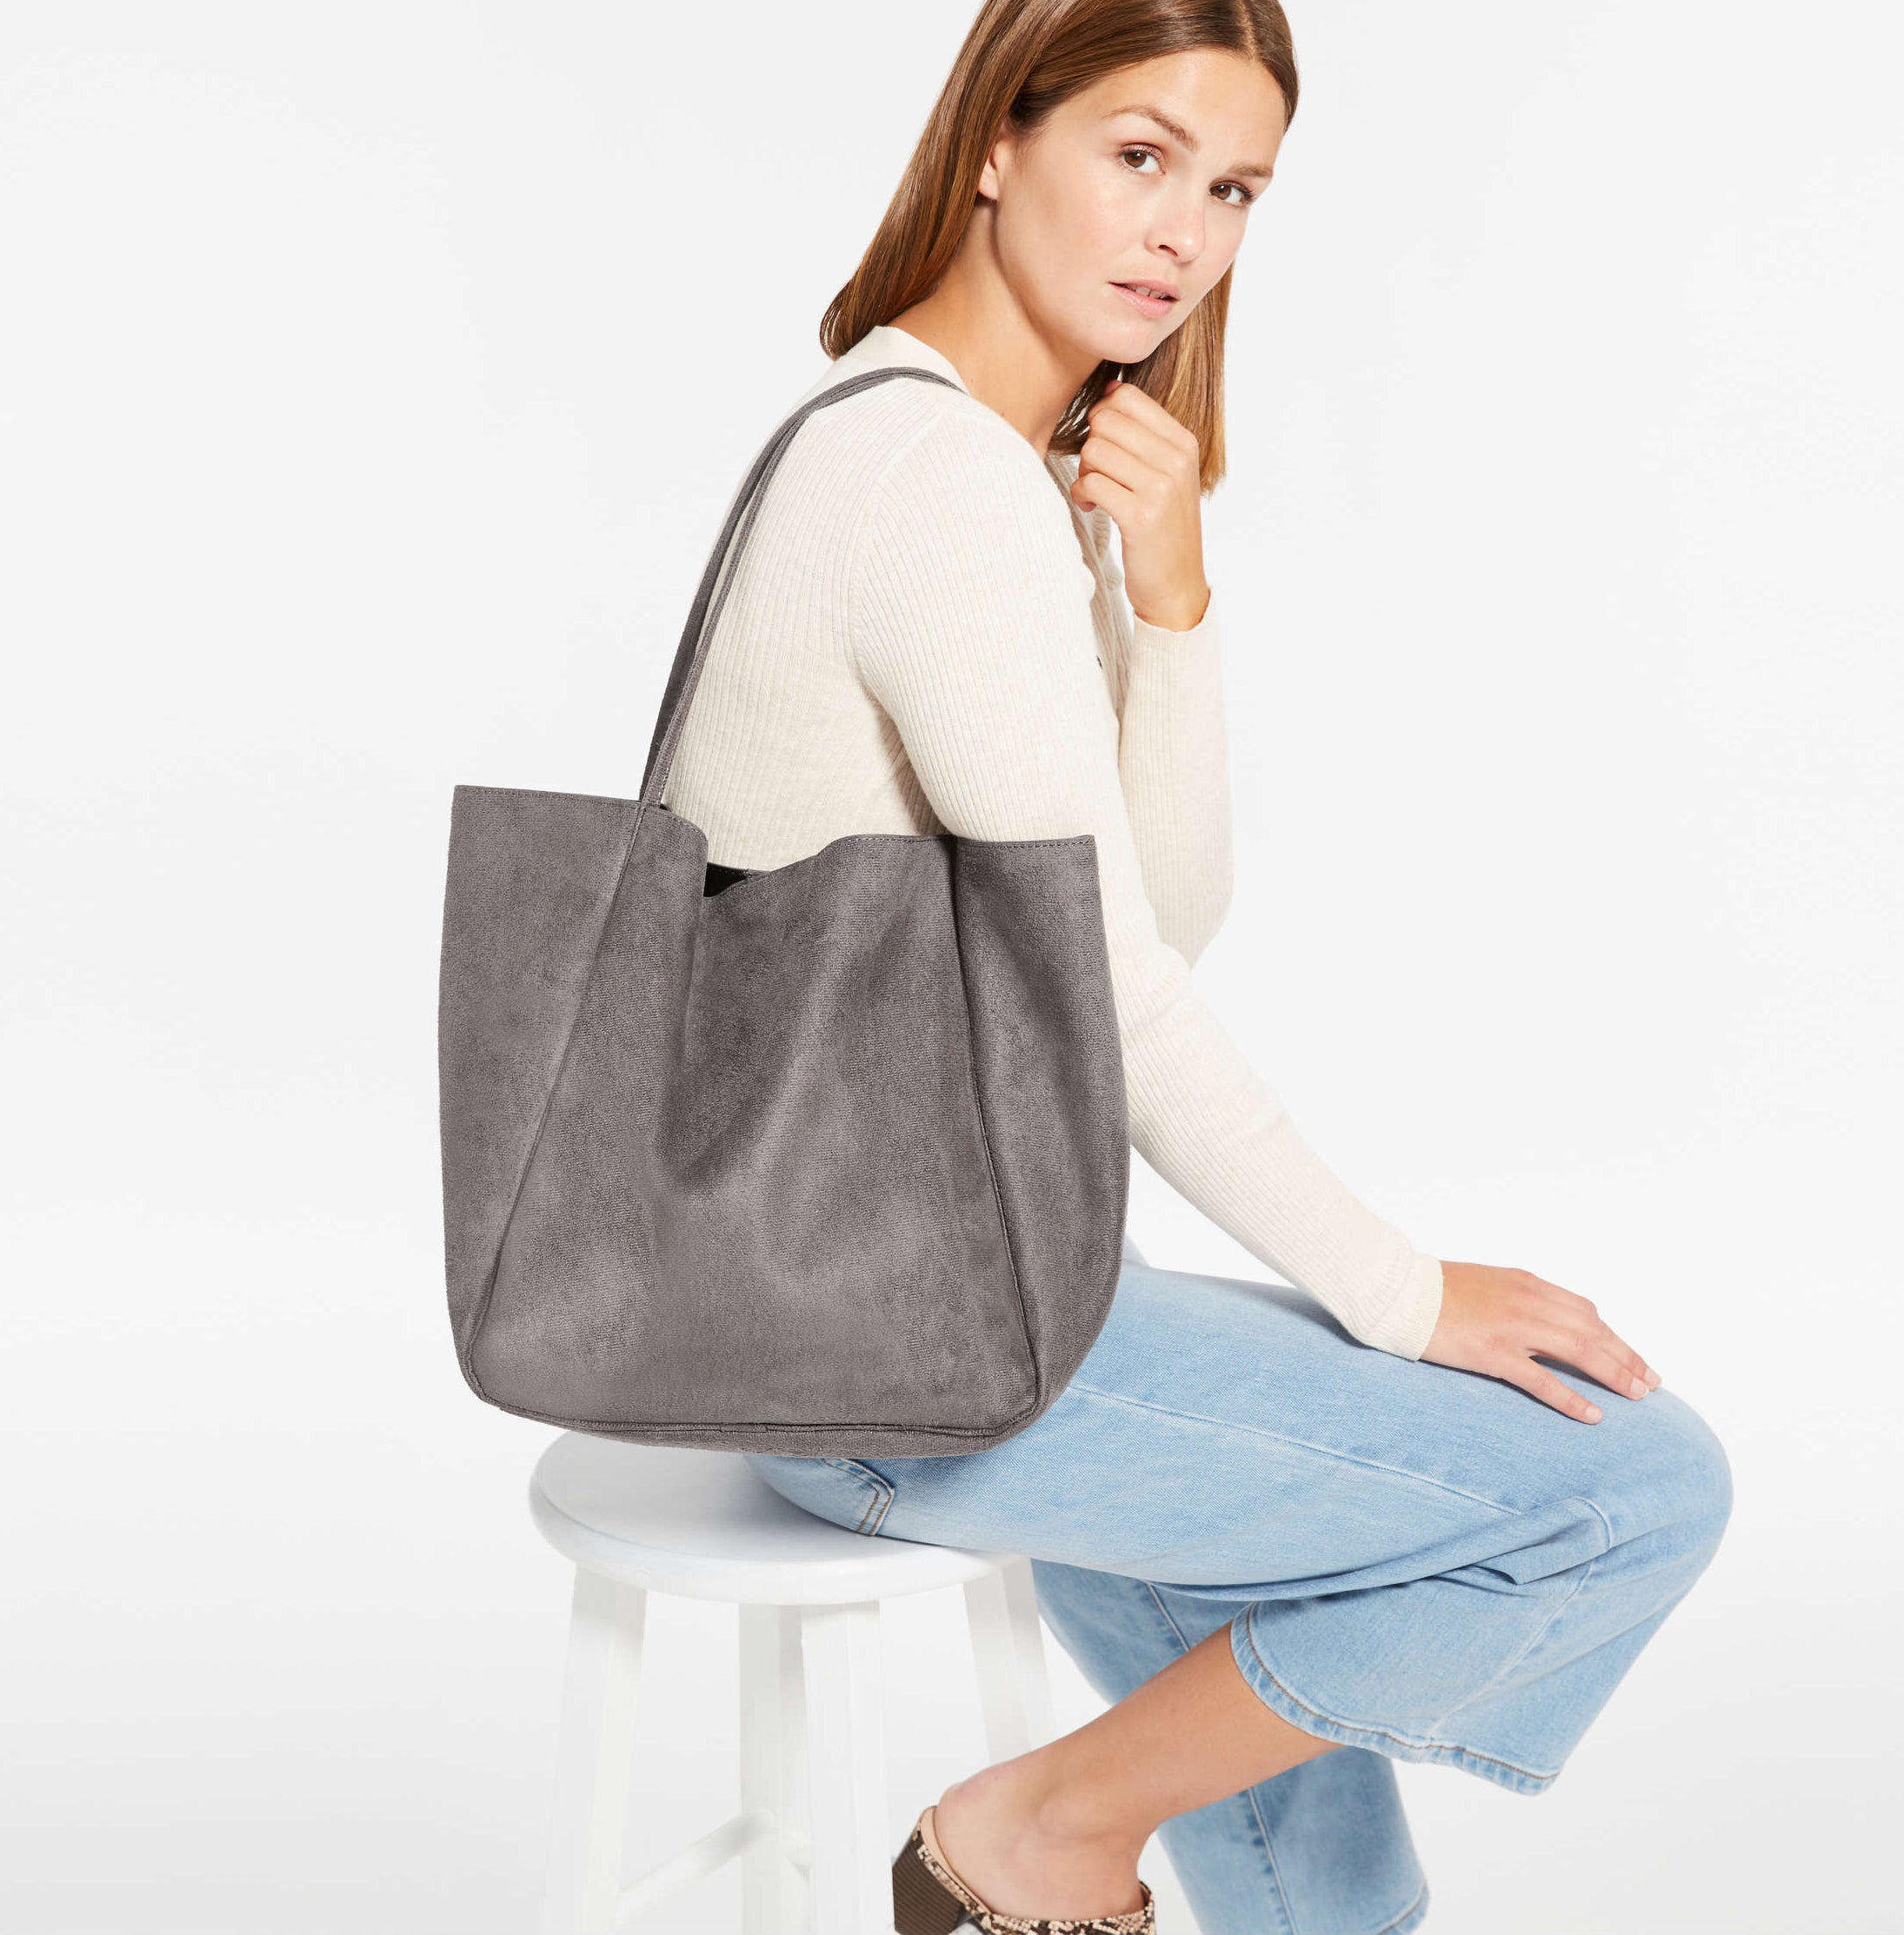 A person wearing a large tote bag over their shoulder